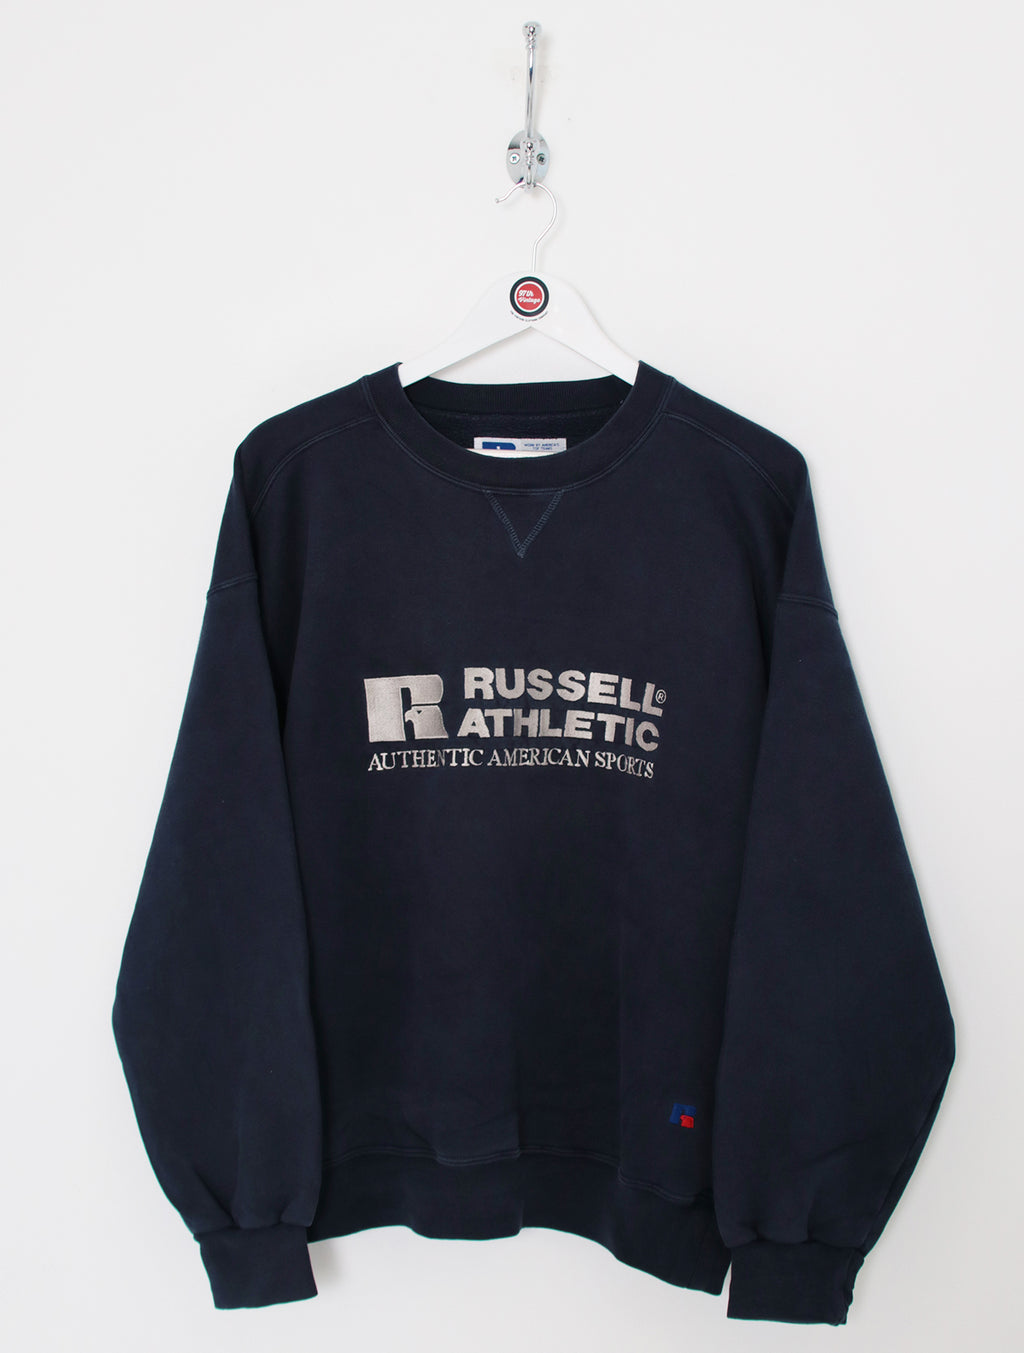 Russell Athletic Sweatshirt (M)